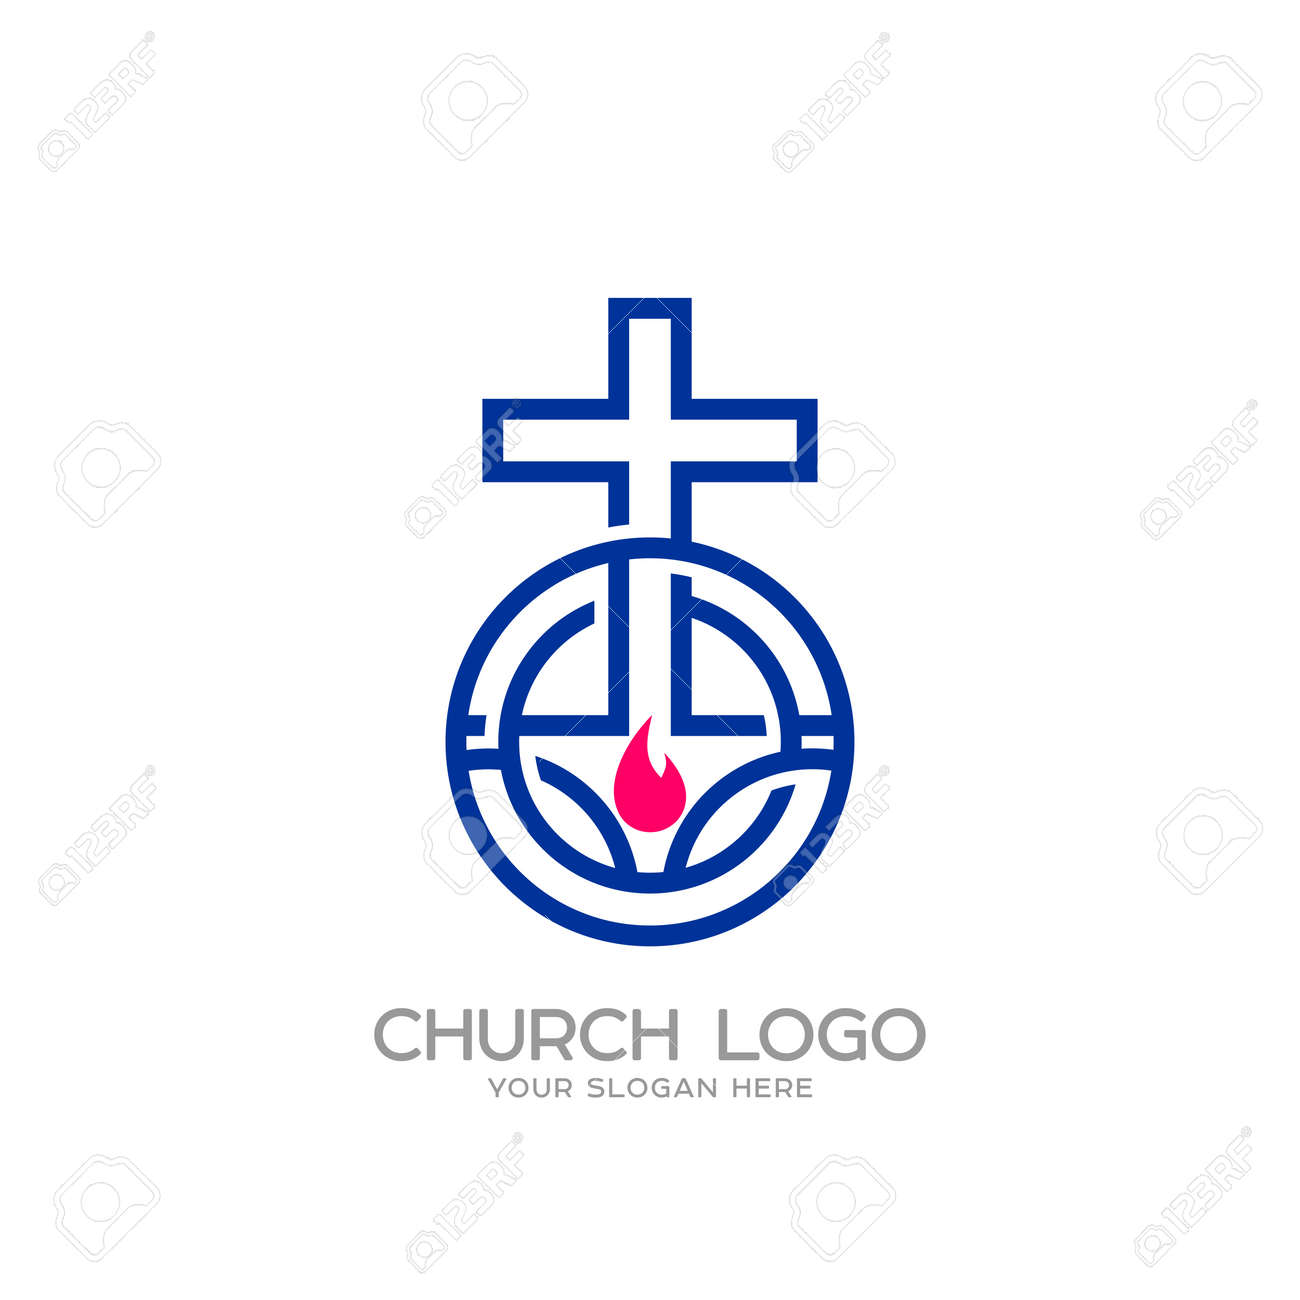 Church Logo Christian Symbols The Cross Of Jesus And The Flame